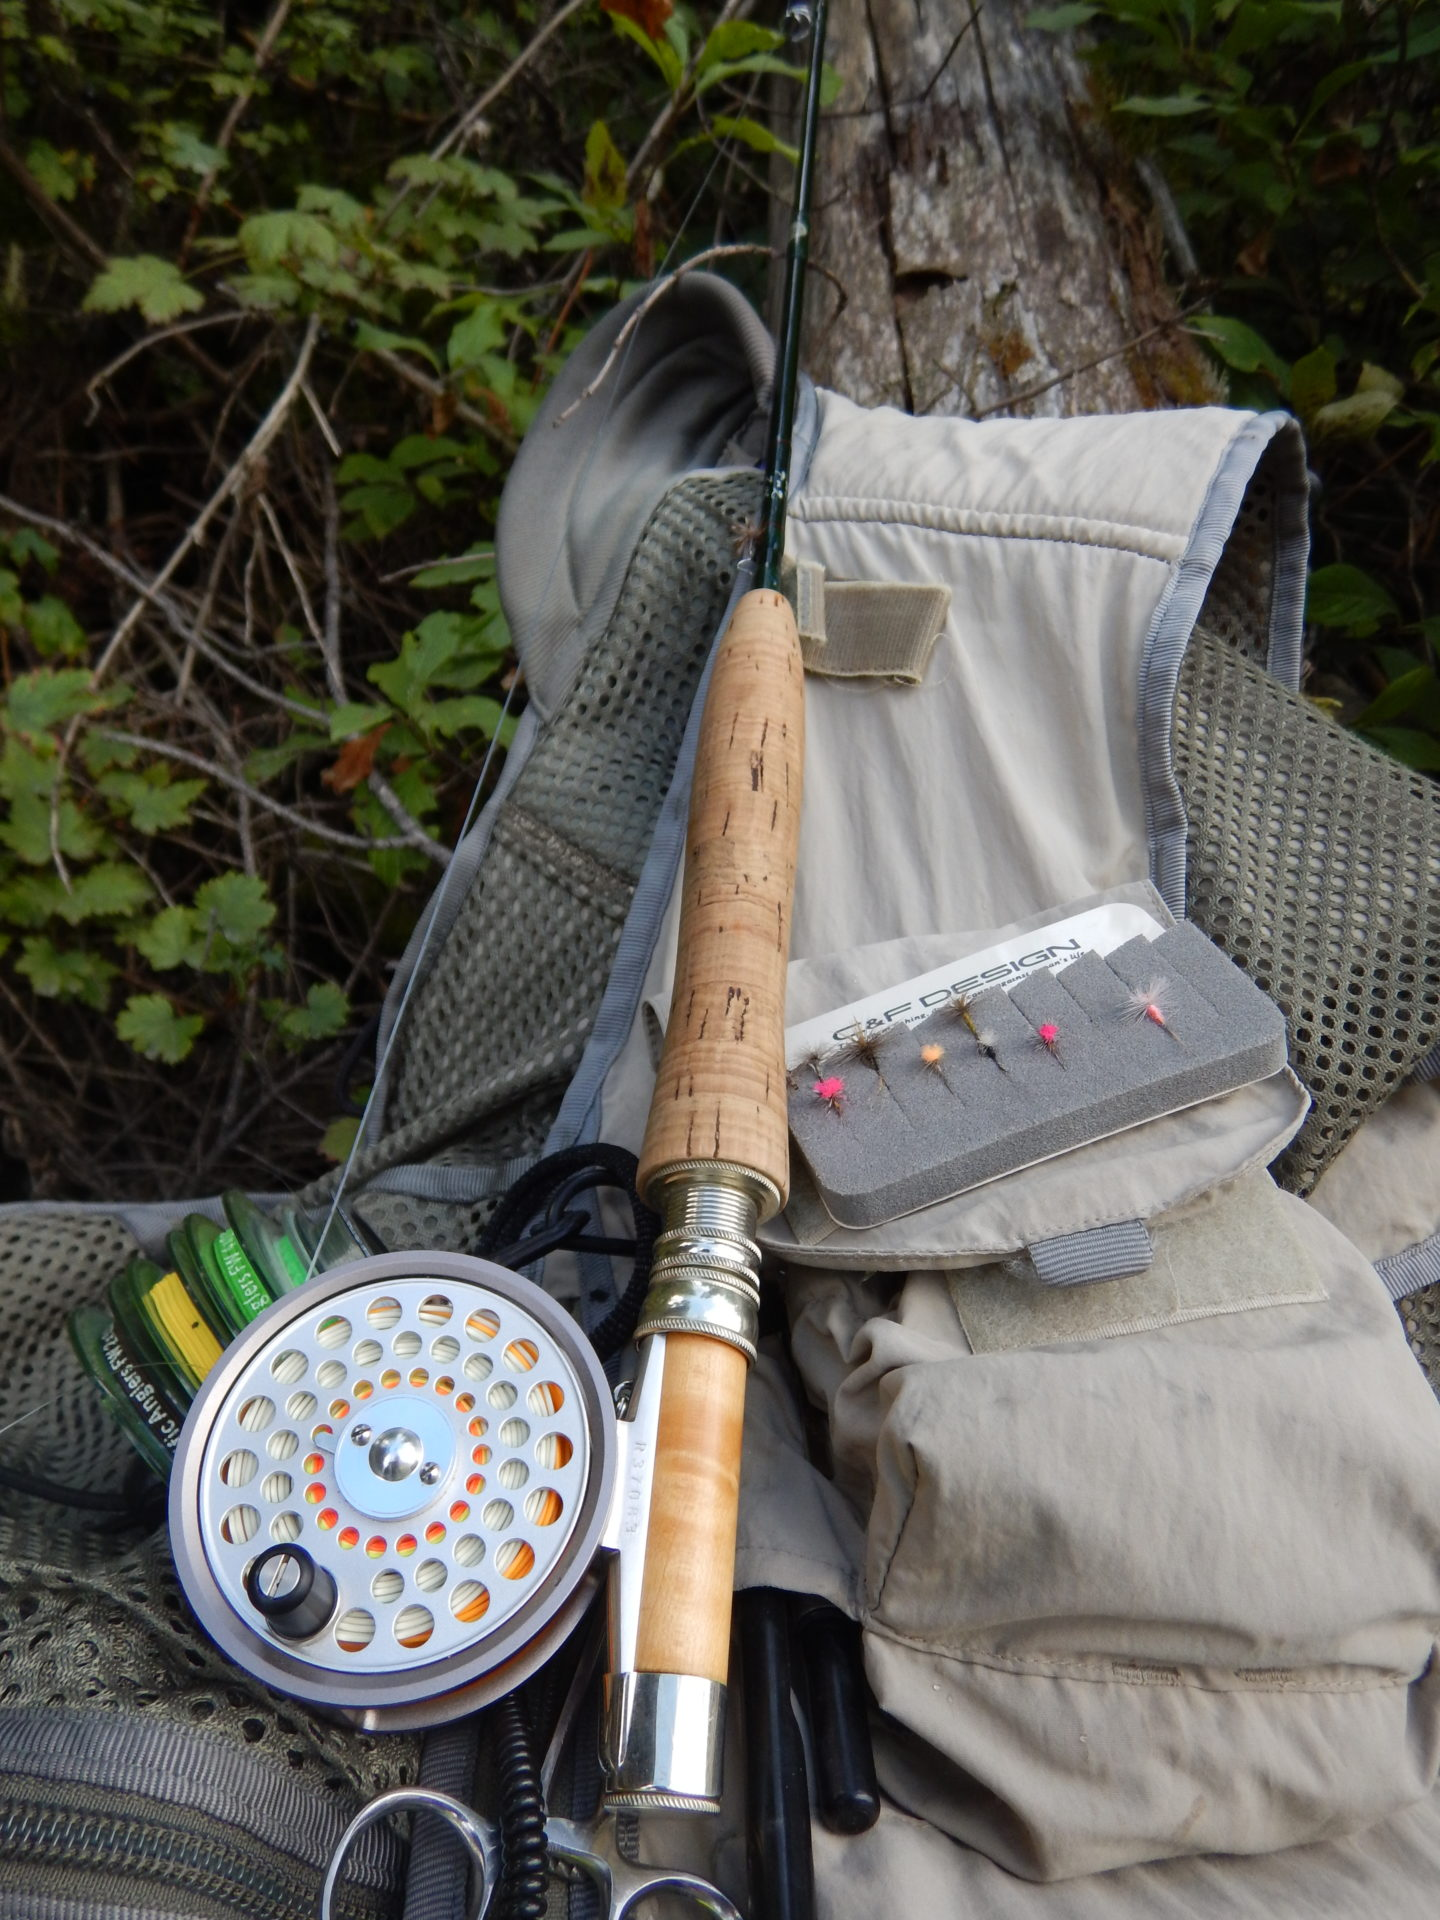 Leader setups for fly fishing can be confusing, so keep it simple.